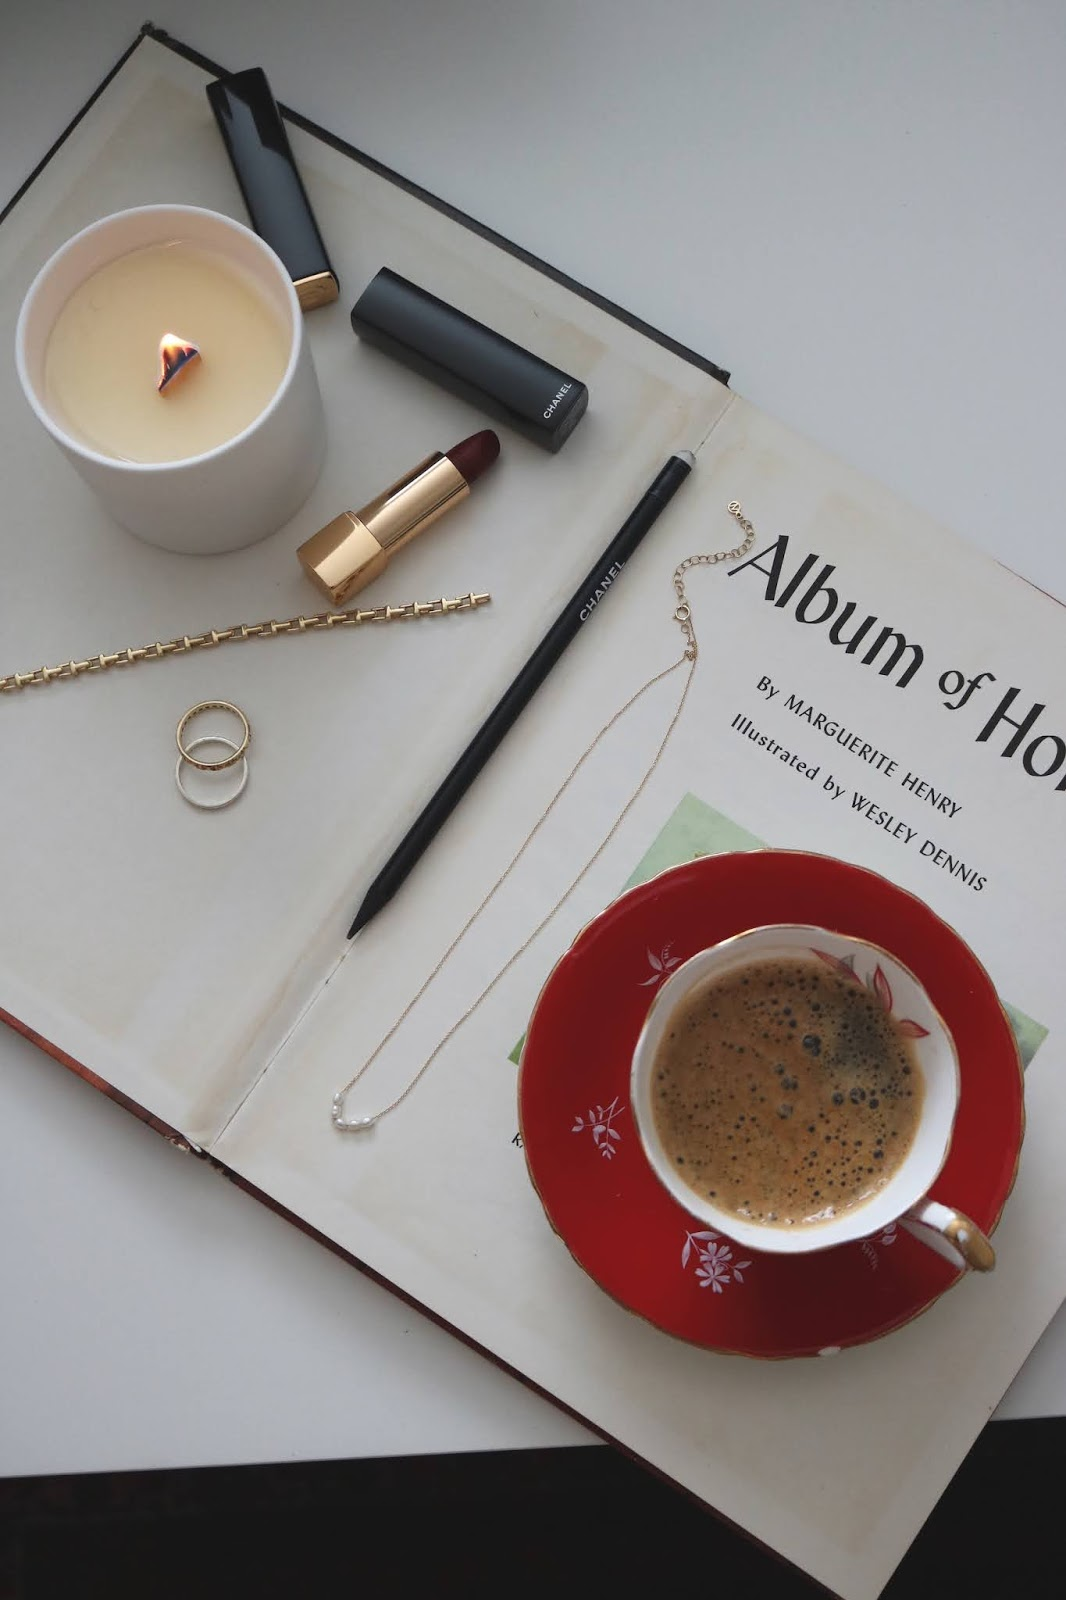 Chanel makeup rests on a book with coffee